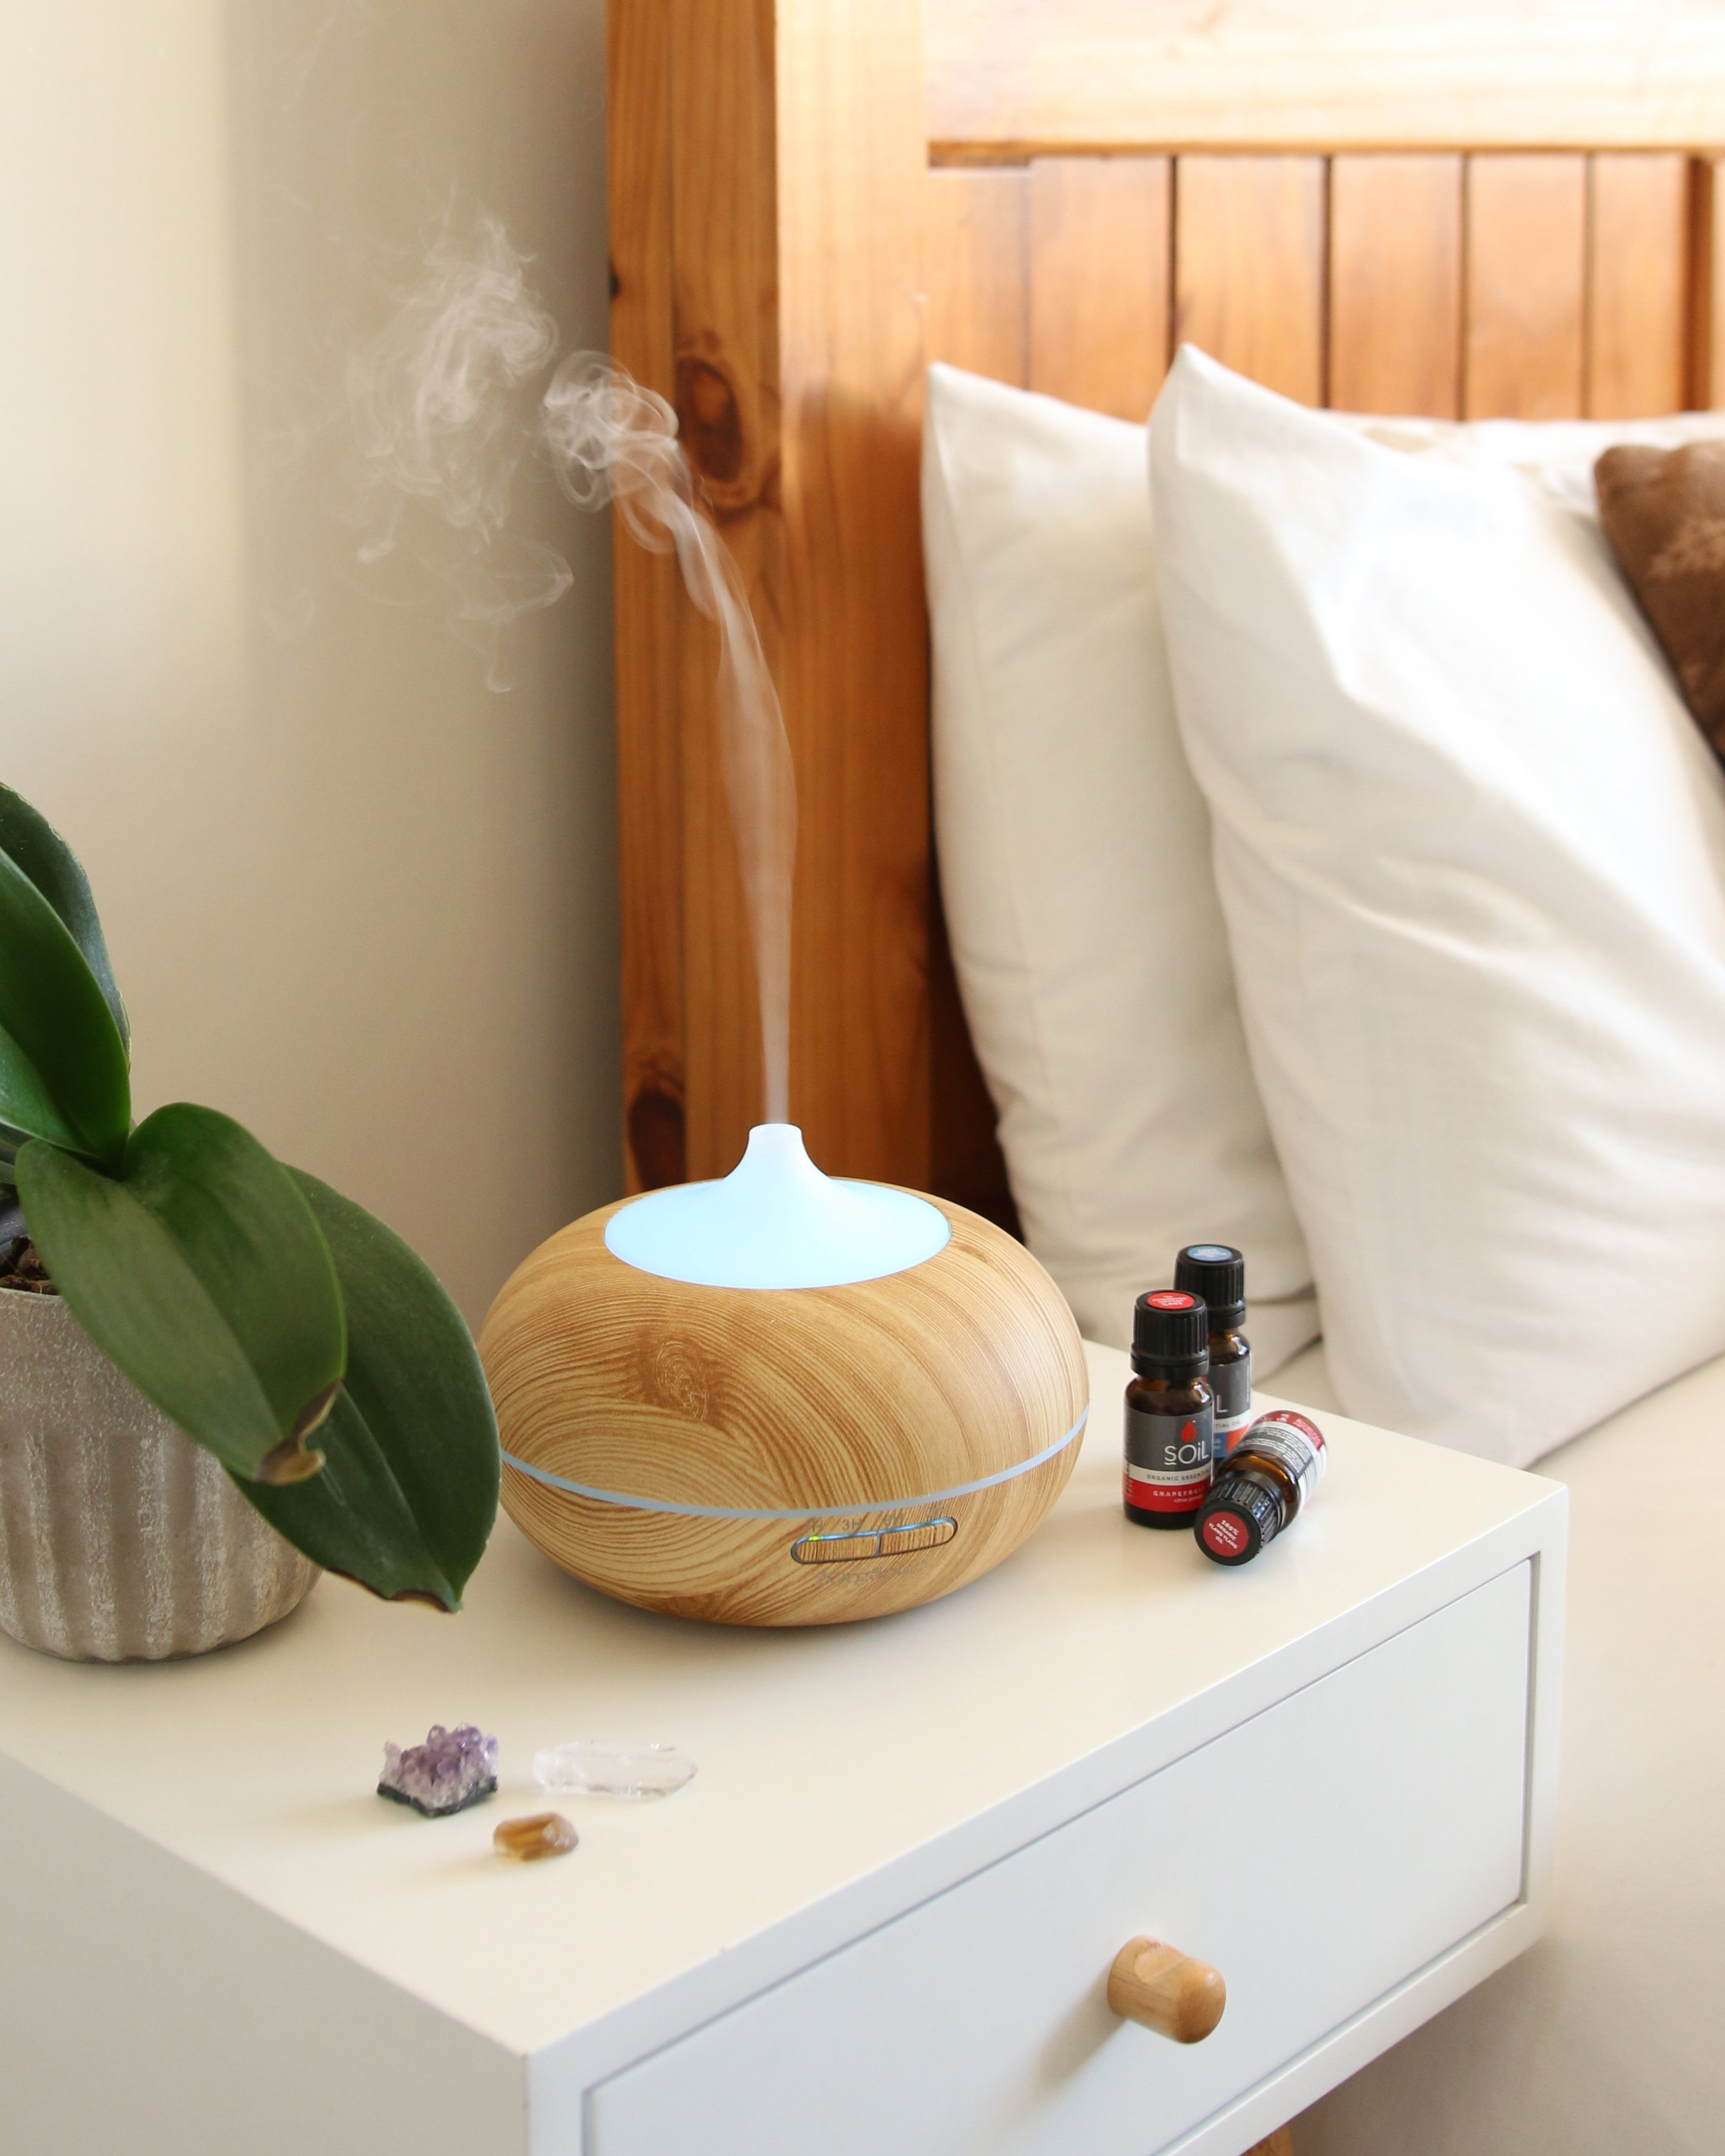 - A product I'm currently obsessed with (and it also just so happens to have been my mom's birthday present) was THIS essential oil diffuser.